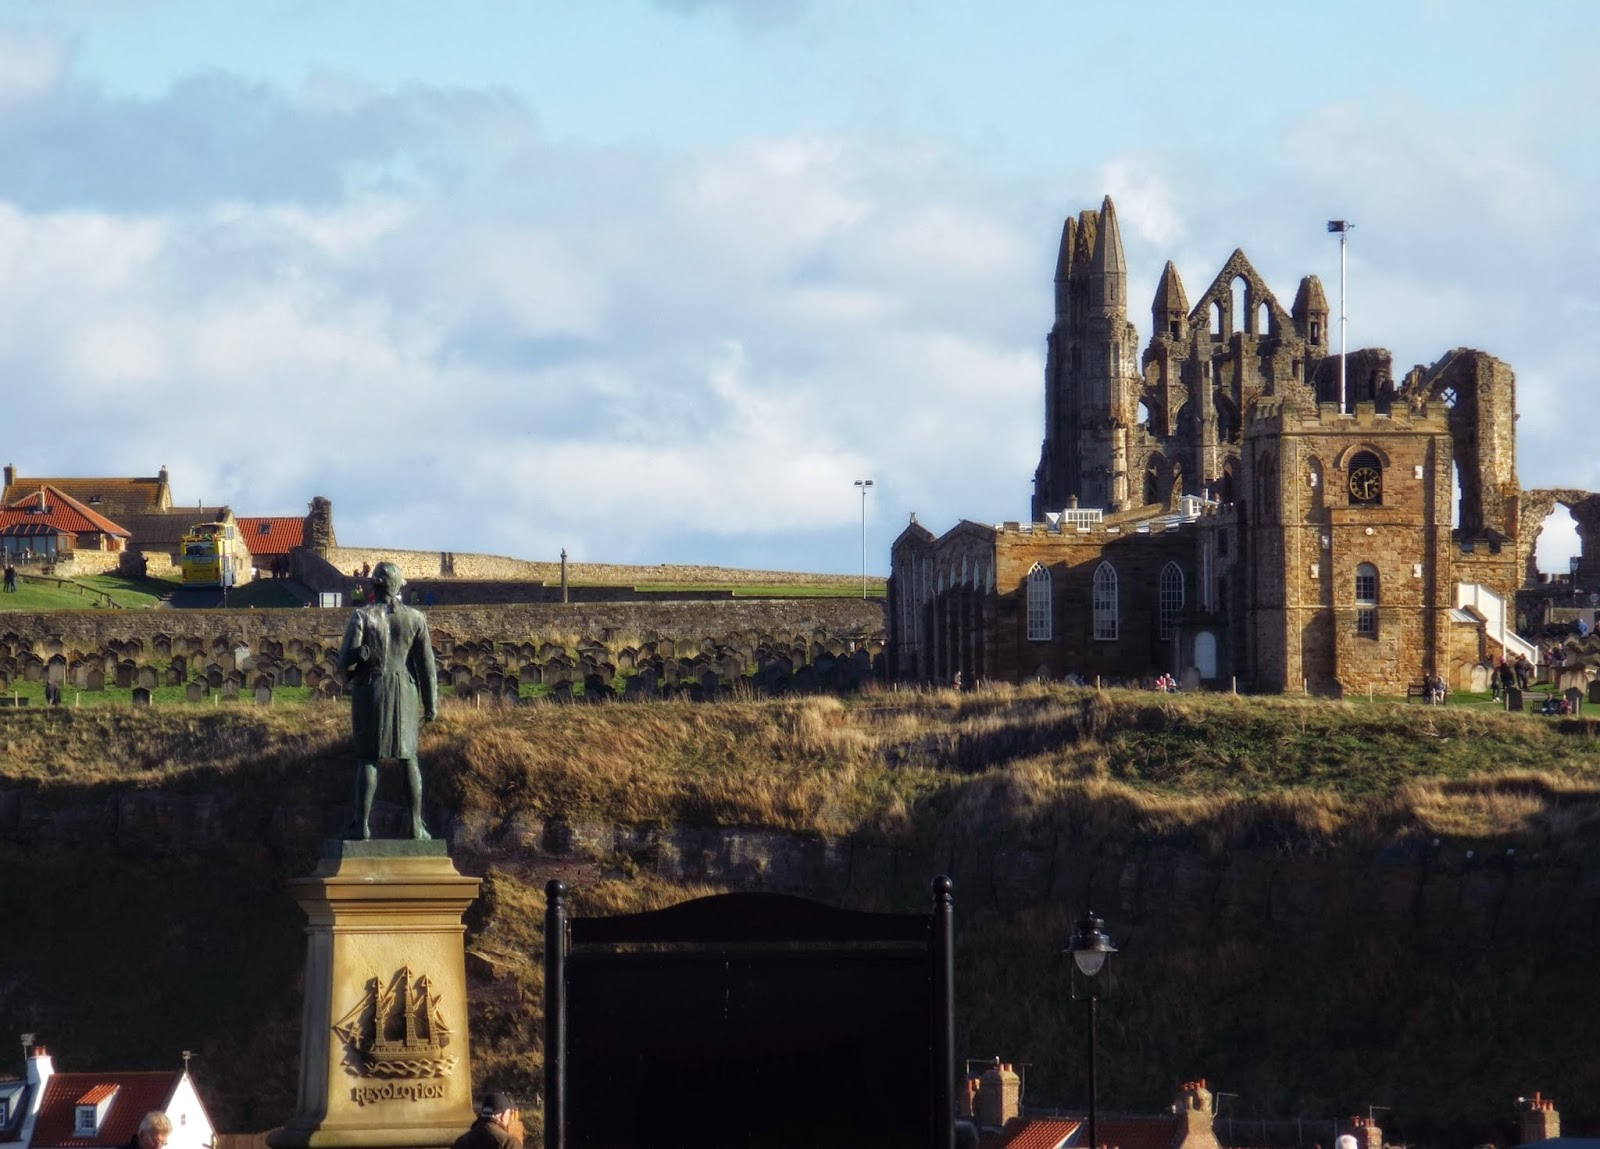 Captain Cook and Whitby Abbey